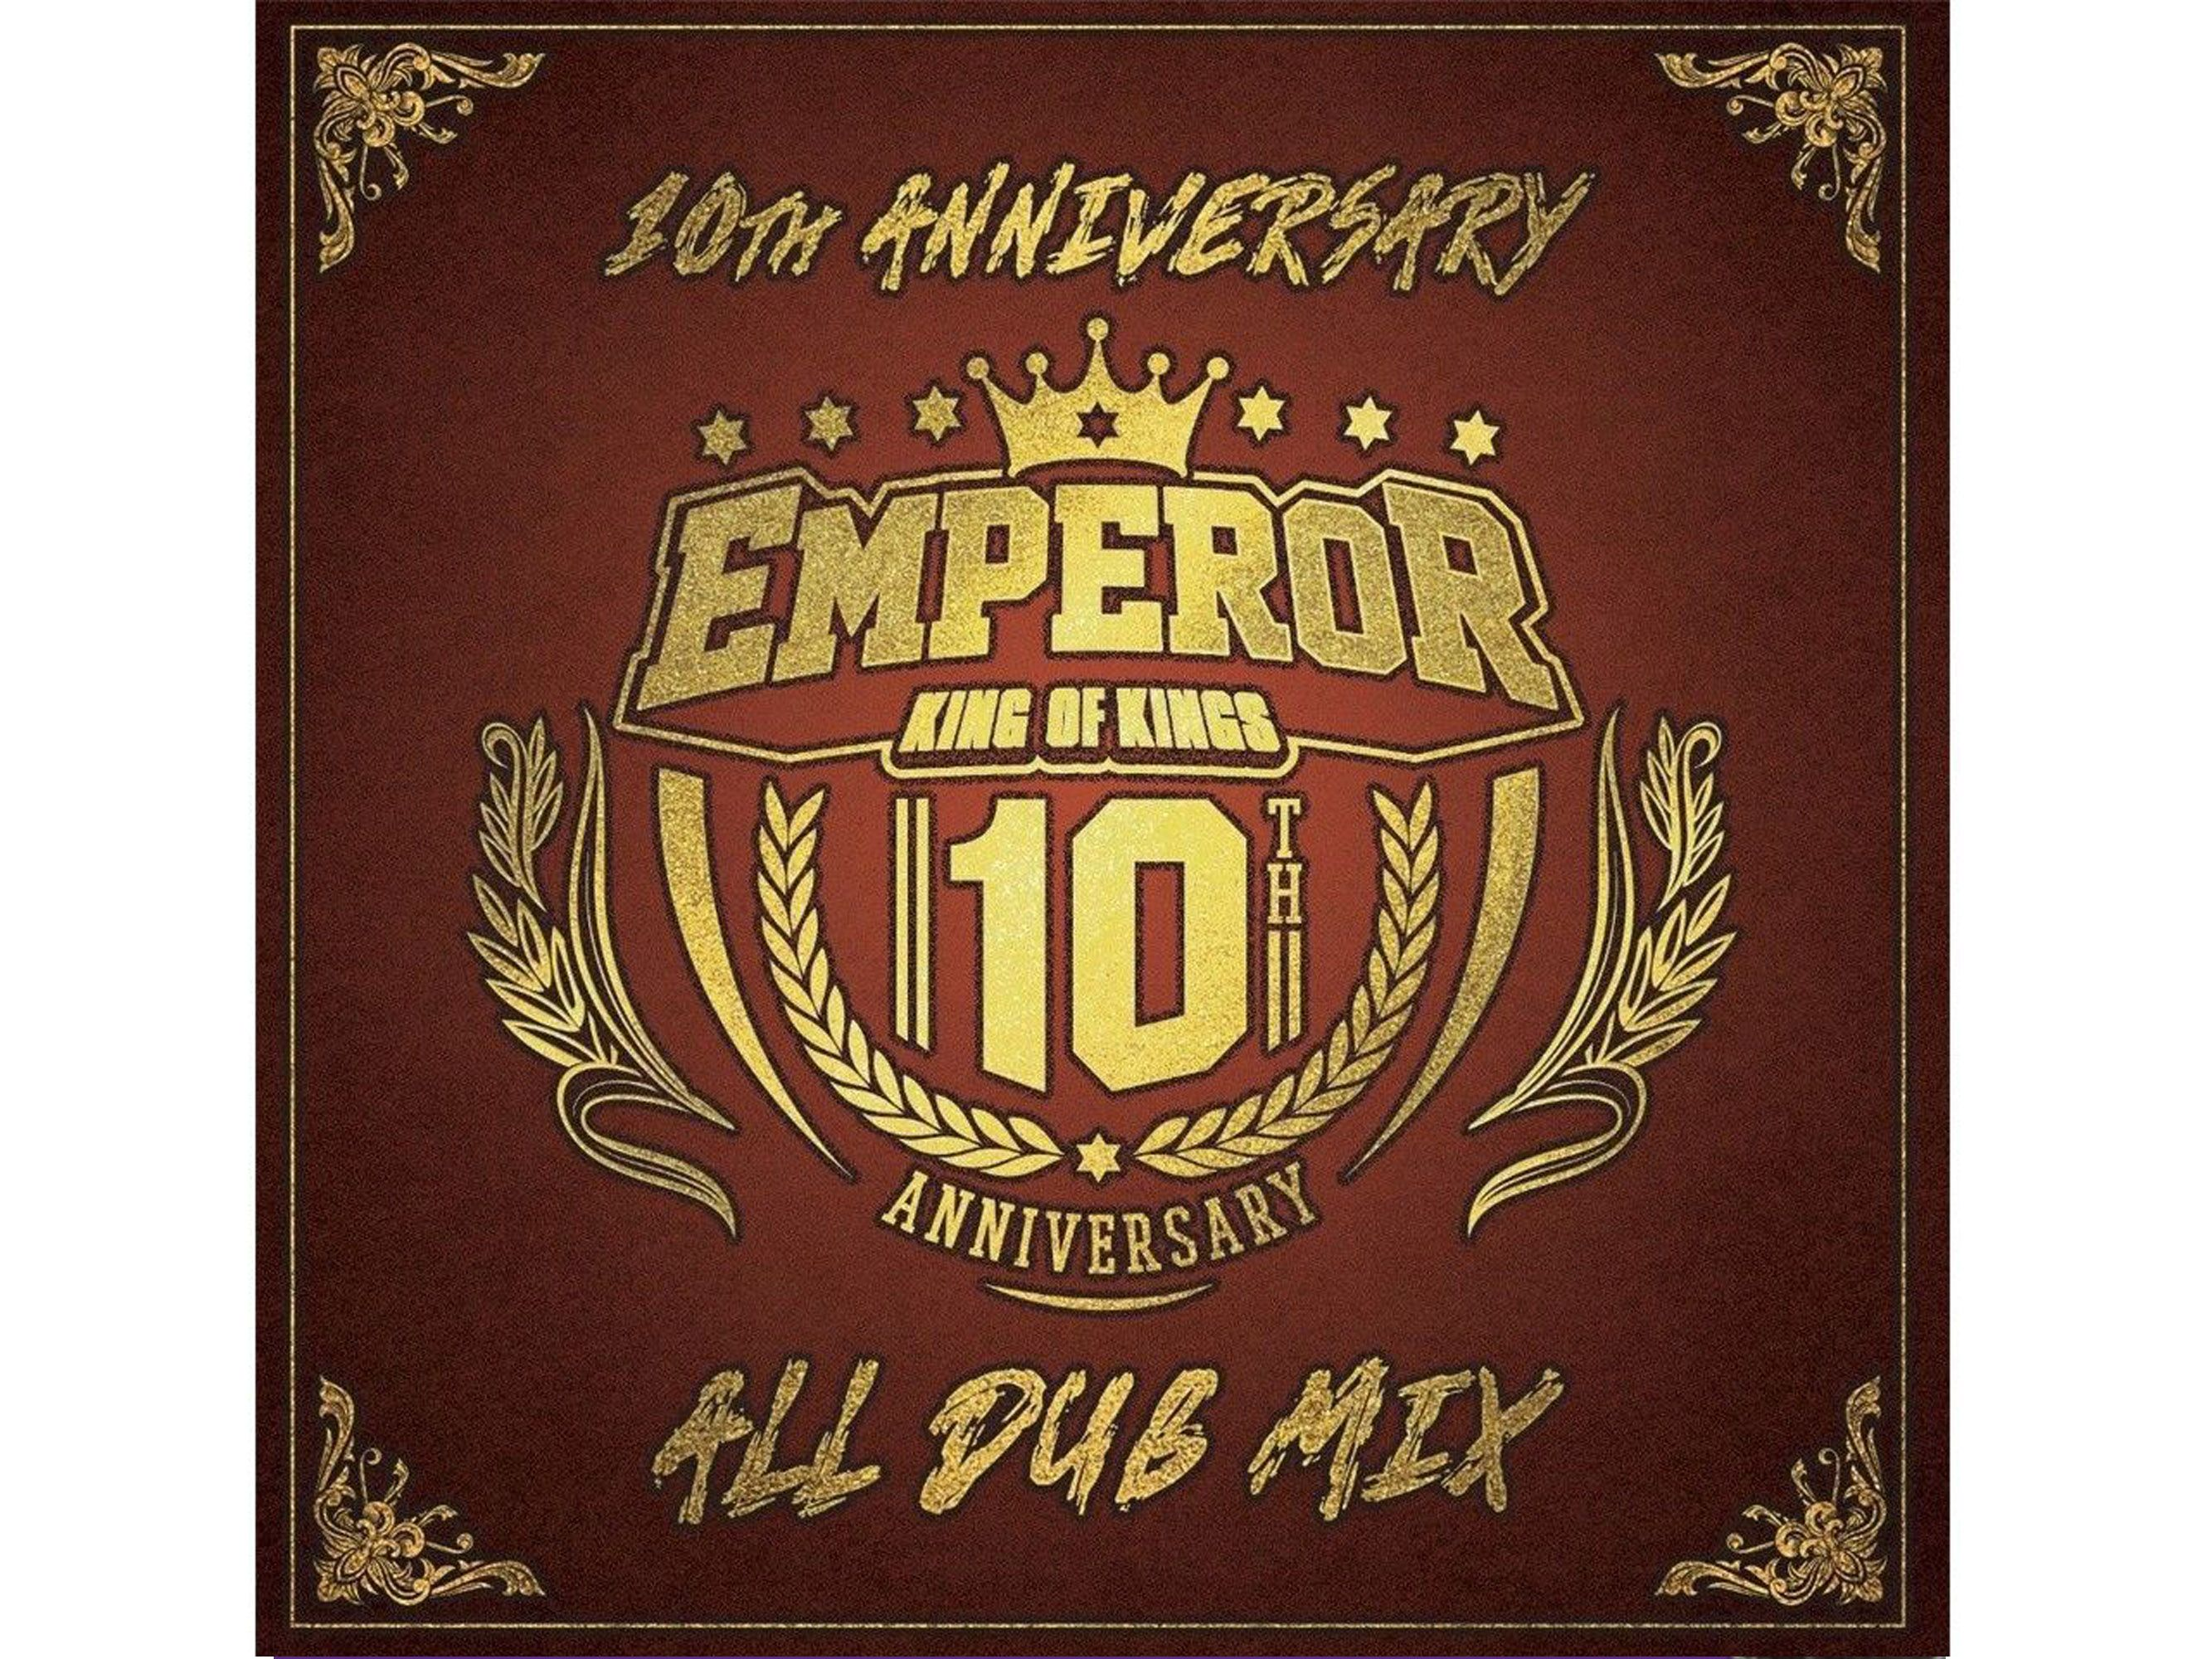 10TH ANNIVERSARY ALL DUB MIX -EMPEROR-